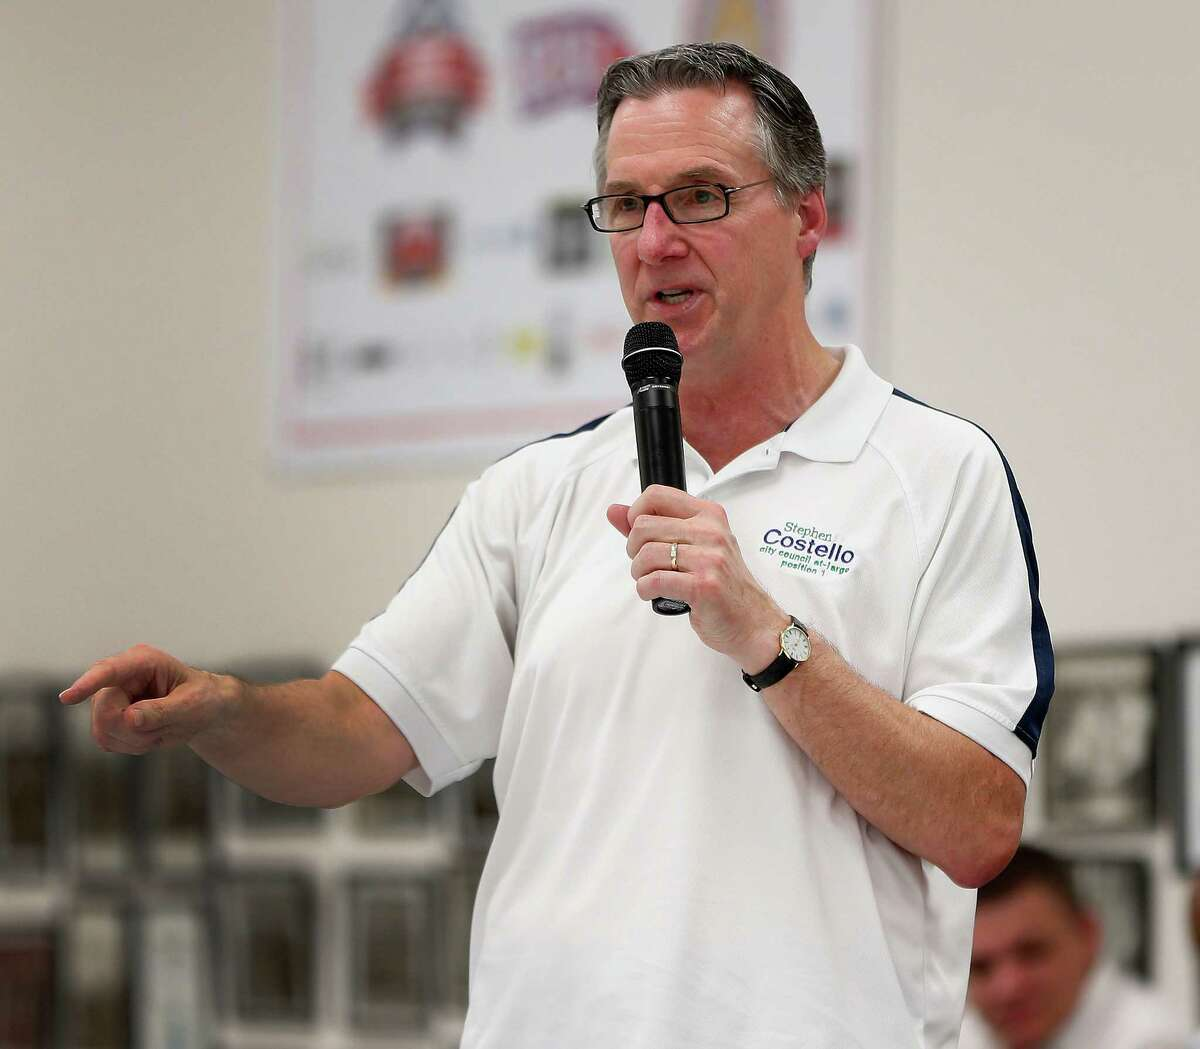 Mayoral candidate Steve Costello speaks during the Houston GLBT Political Caucus at the IBEW Hall, where they picked their slate of mayoral, controller and city council candidates on Saturday, Aug. 8, 2015, in Houston. A large crowd of nearly 300 members, was a traditional caucus-style event, with all of the progressive mayoral candidates present.( Karen Warren / Houston Chronicle )